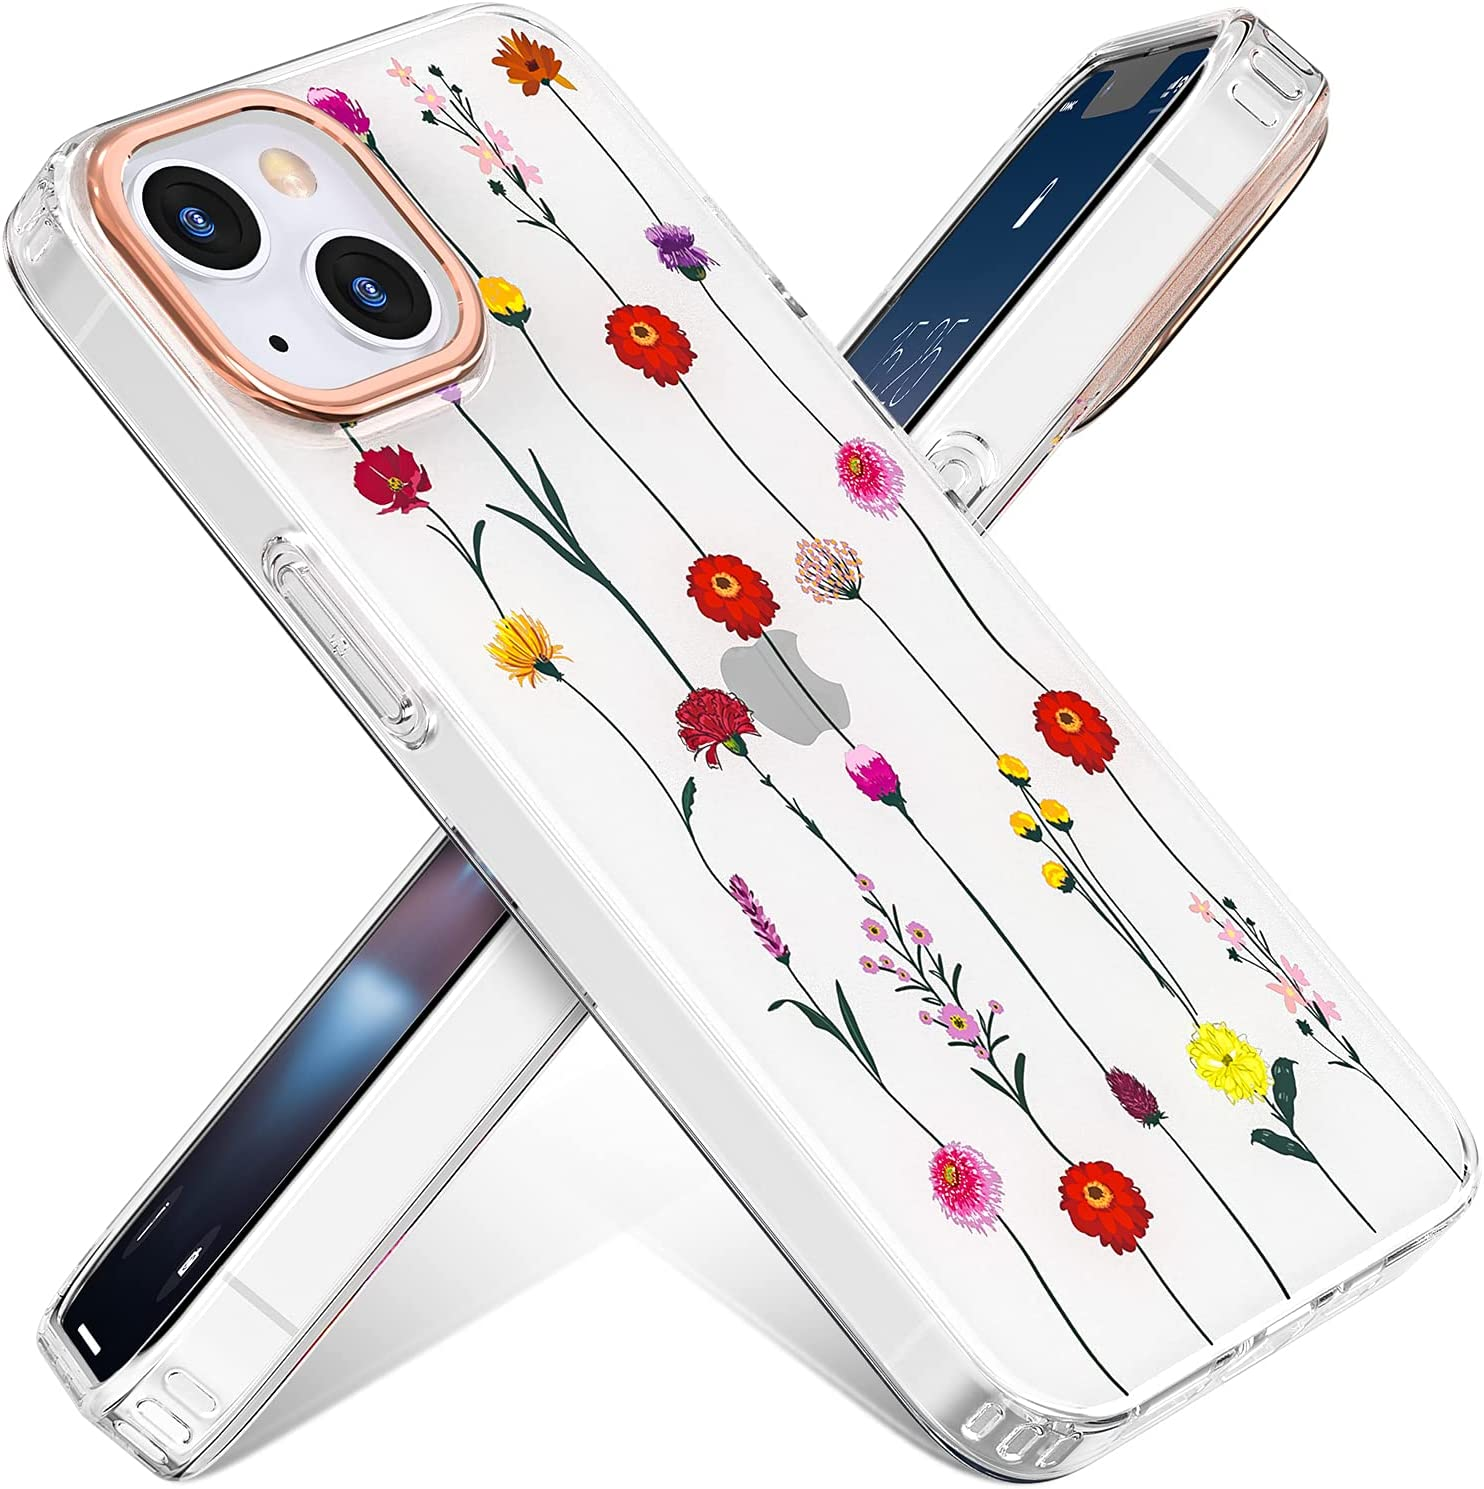 Zelaprox Compatible with iPhone 13 case, Floral Shockproof Durable Slim Thin Cases, Phone Cover with Flower Pattern for iPhone 13 6.1